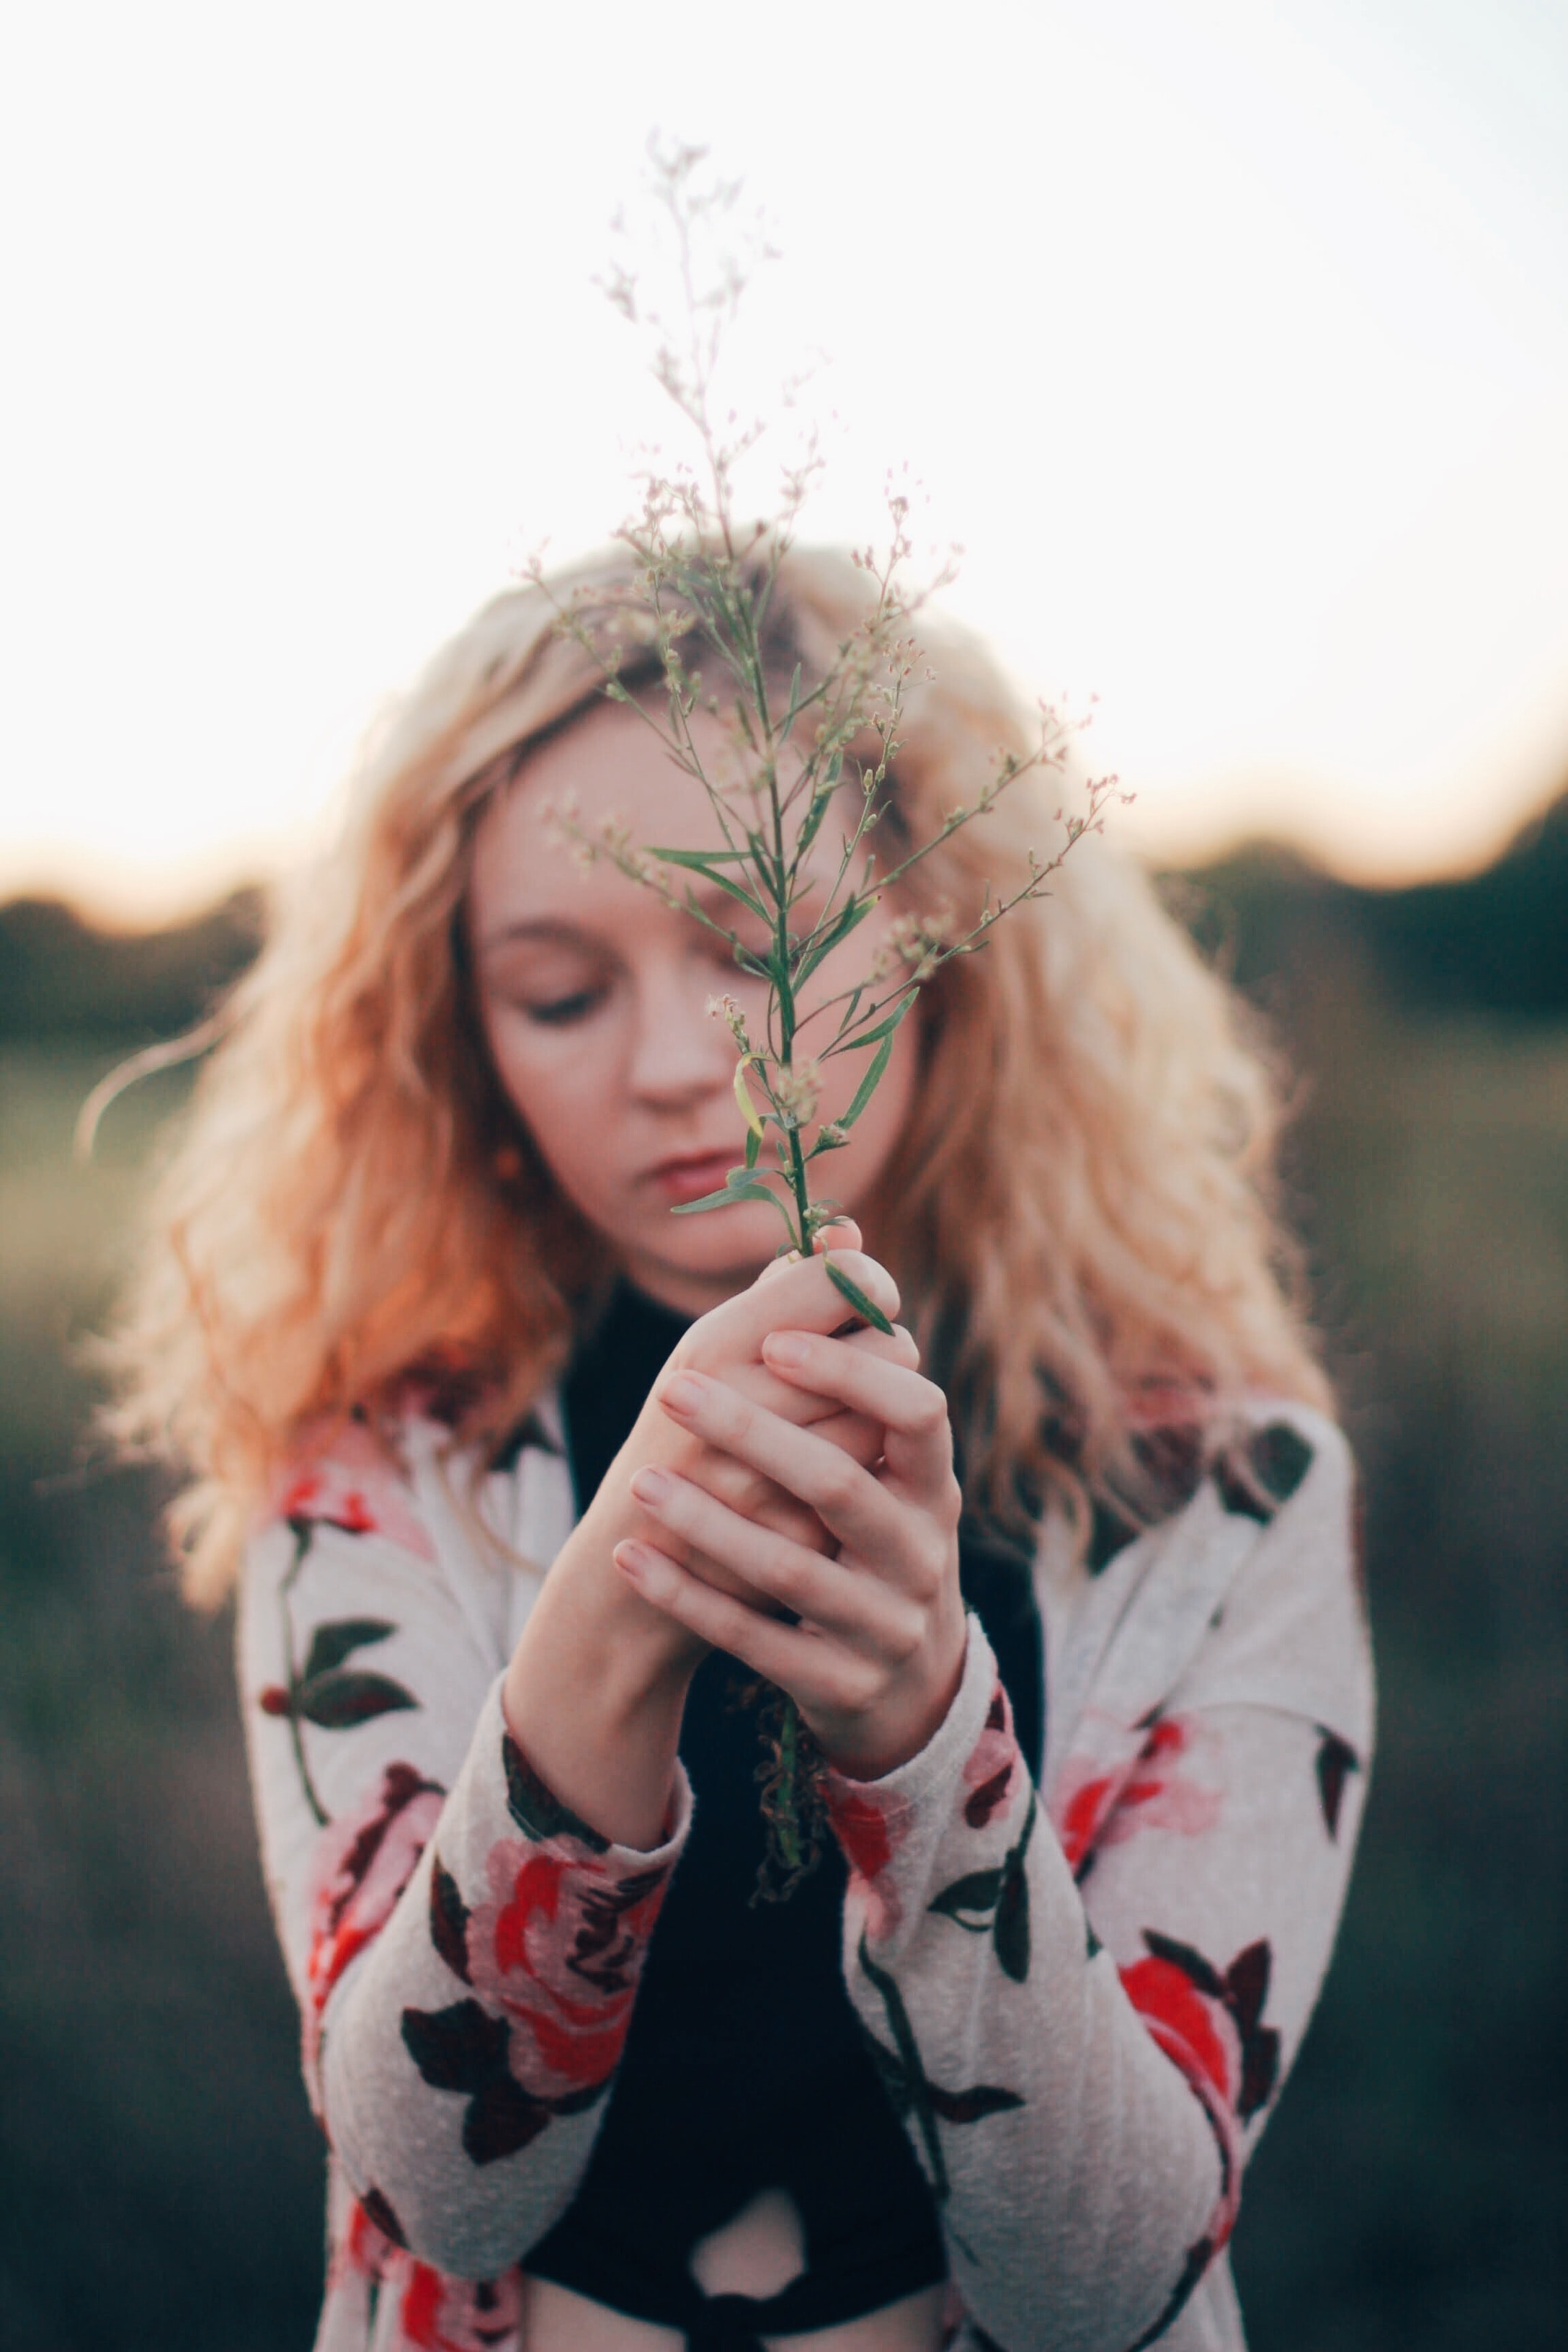 selective focus photo of woman holding white flower